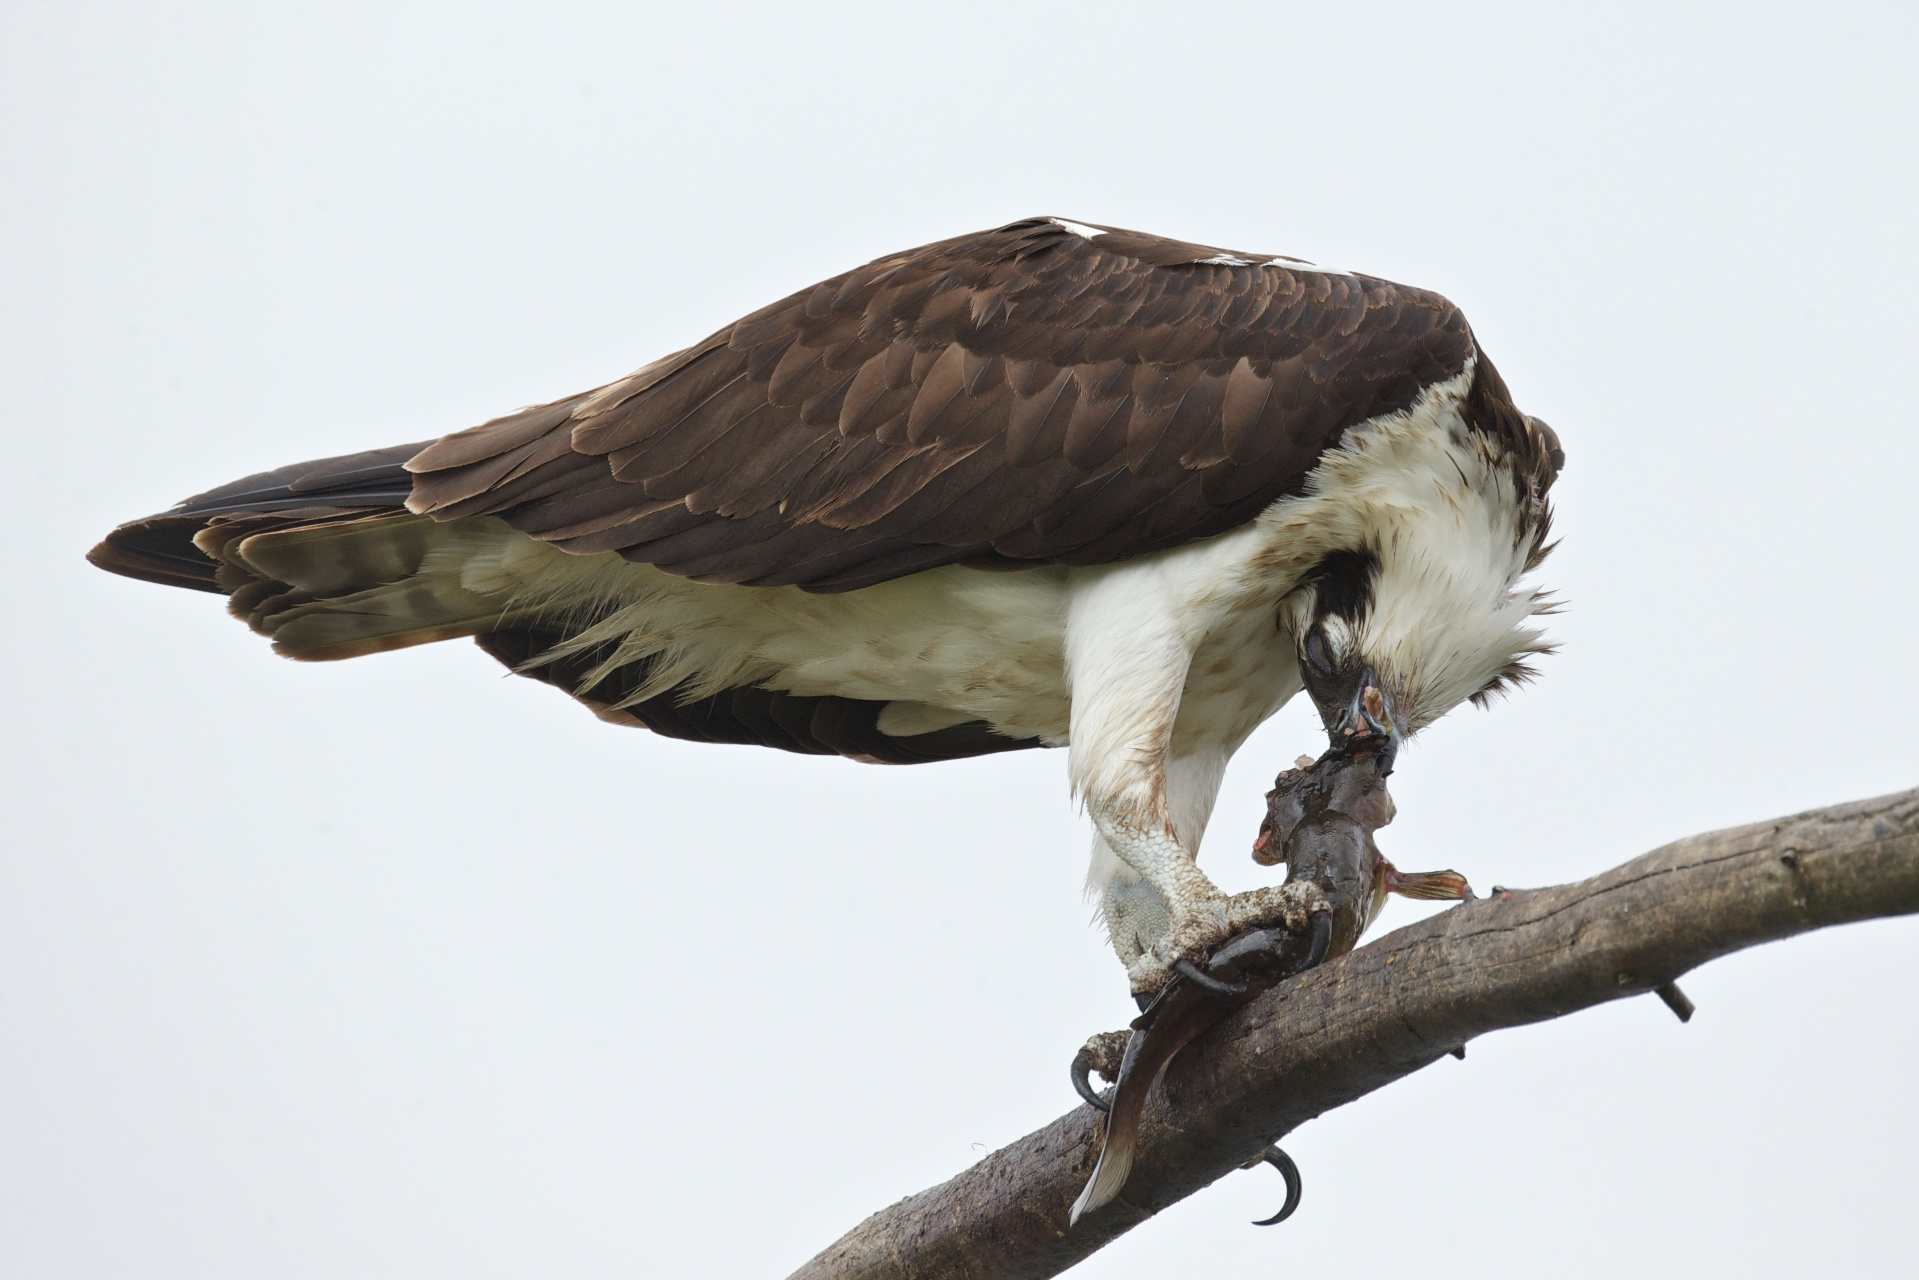 osprey eating fish 8